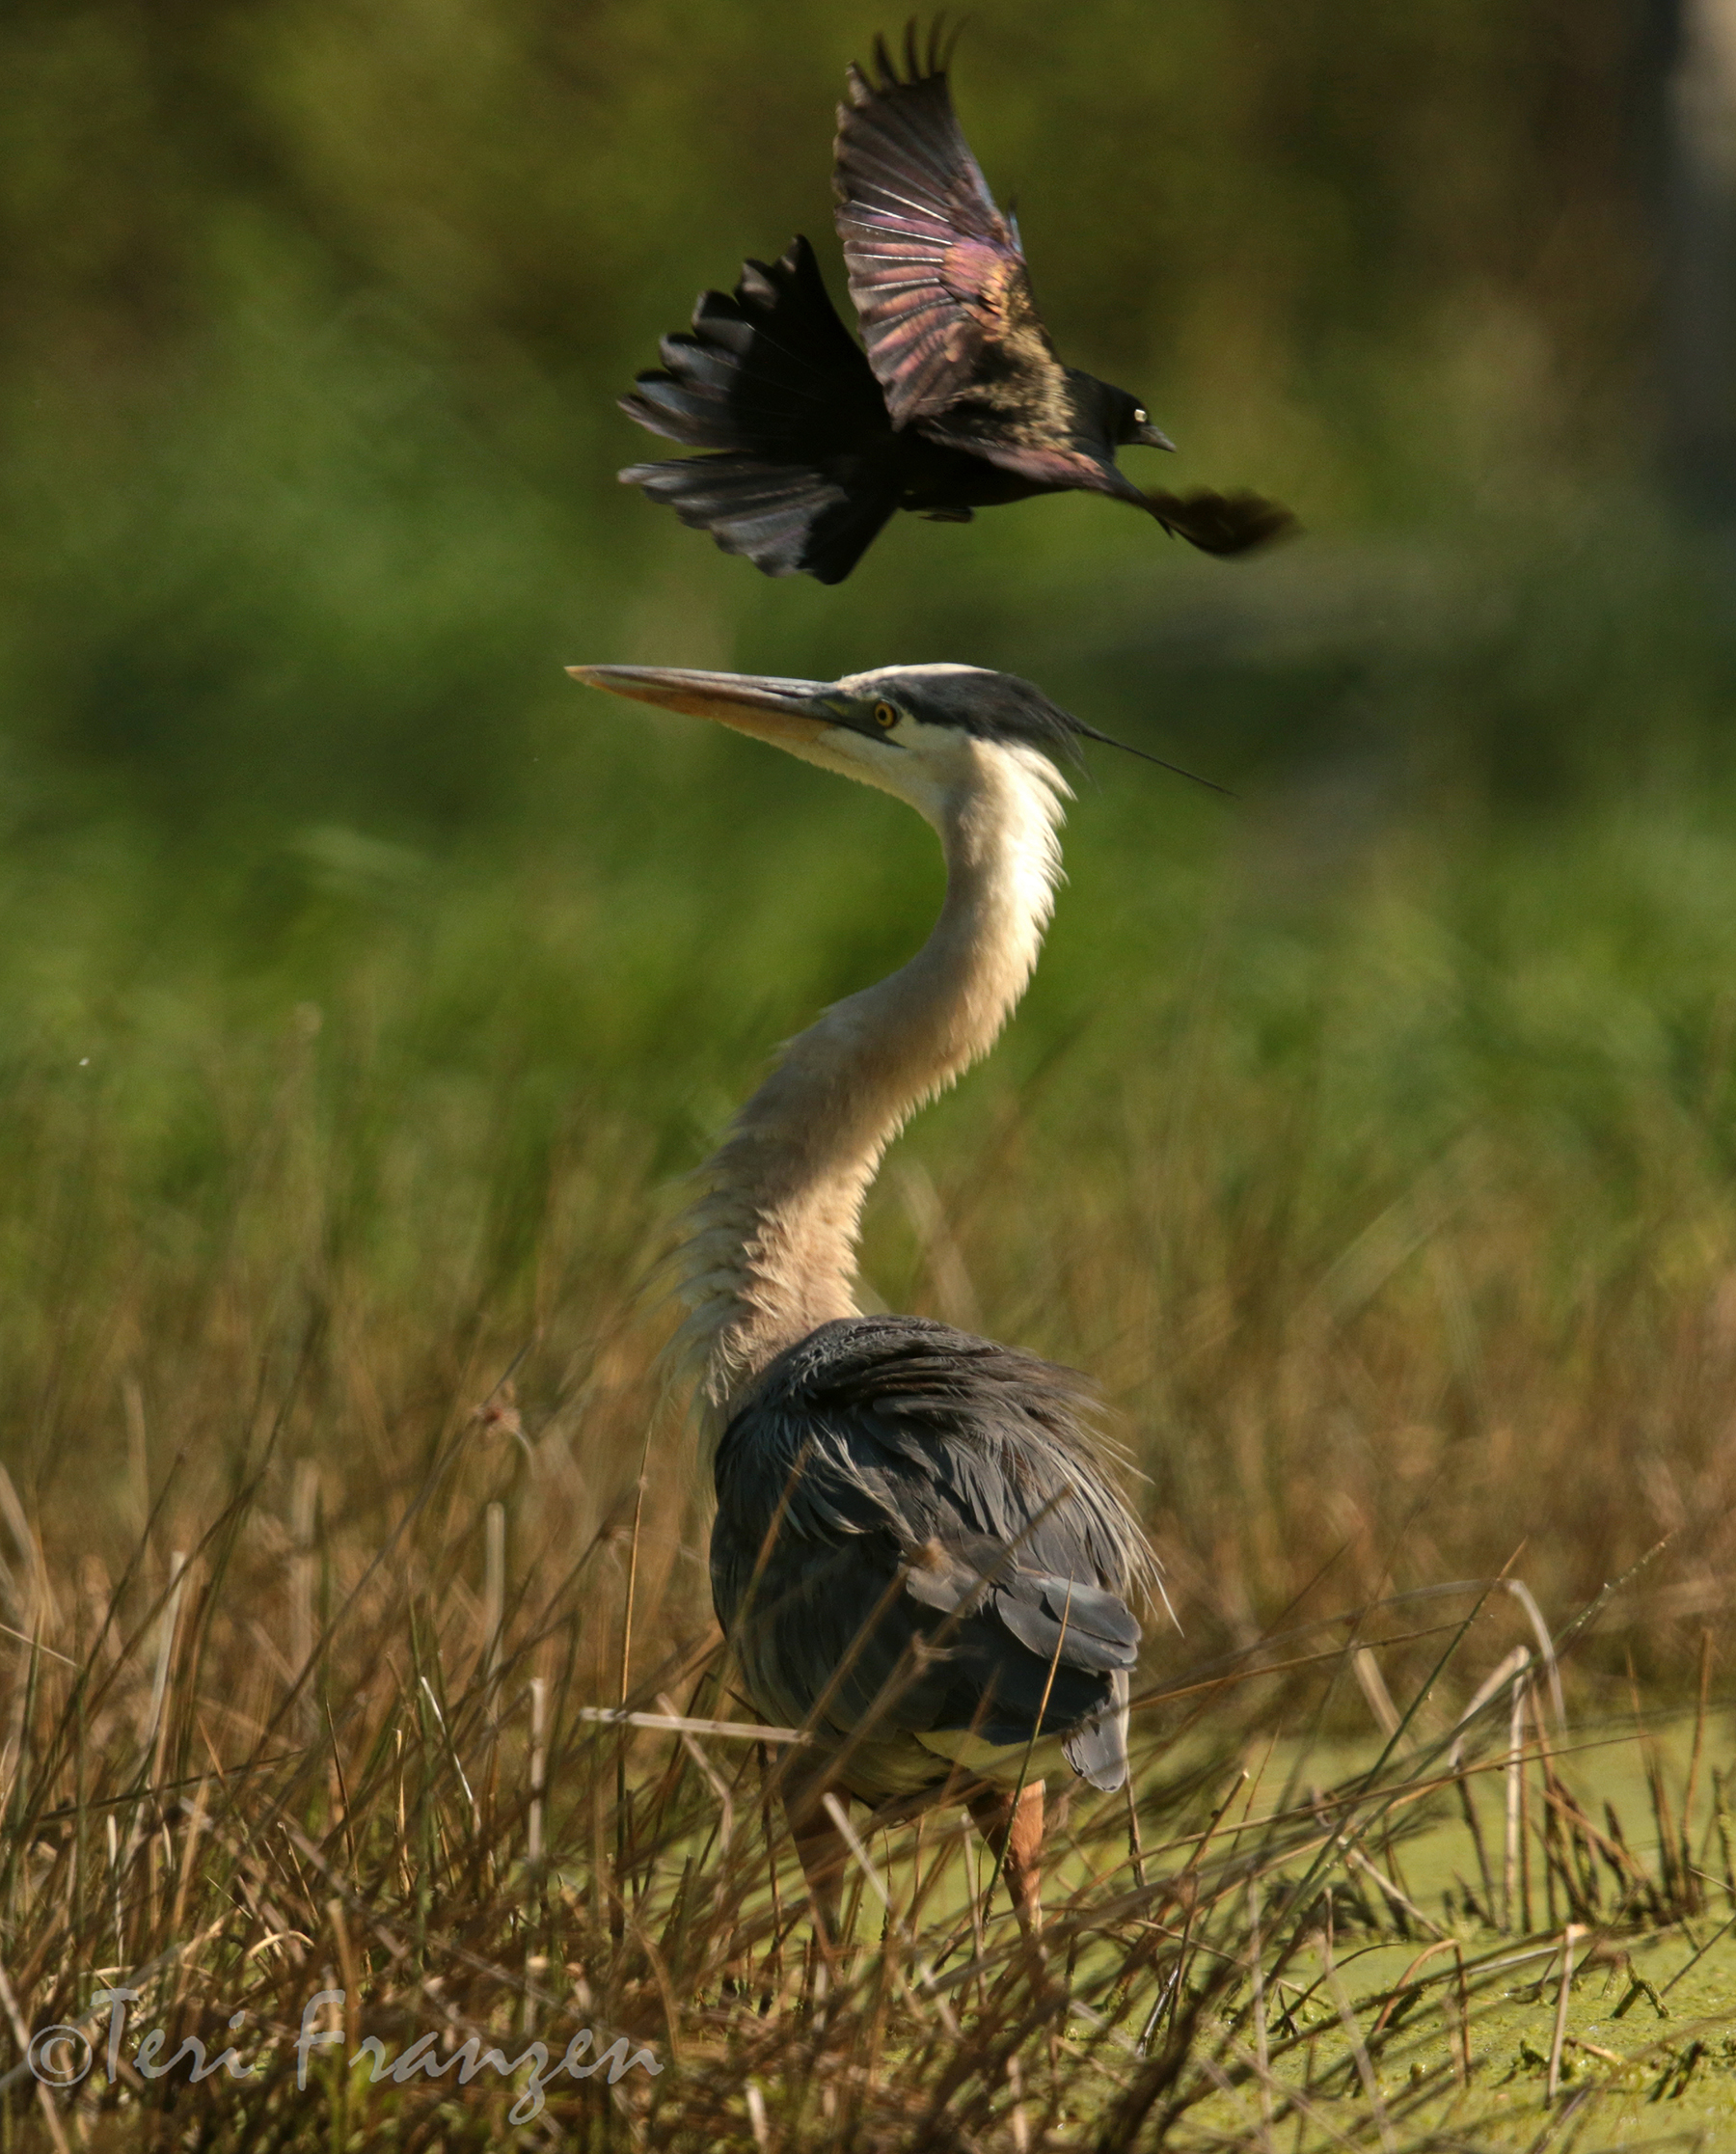 Great Blue Heron and Common Grackle